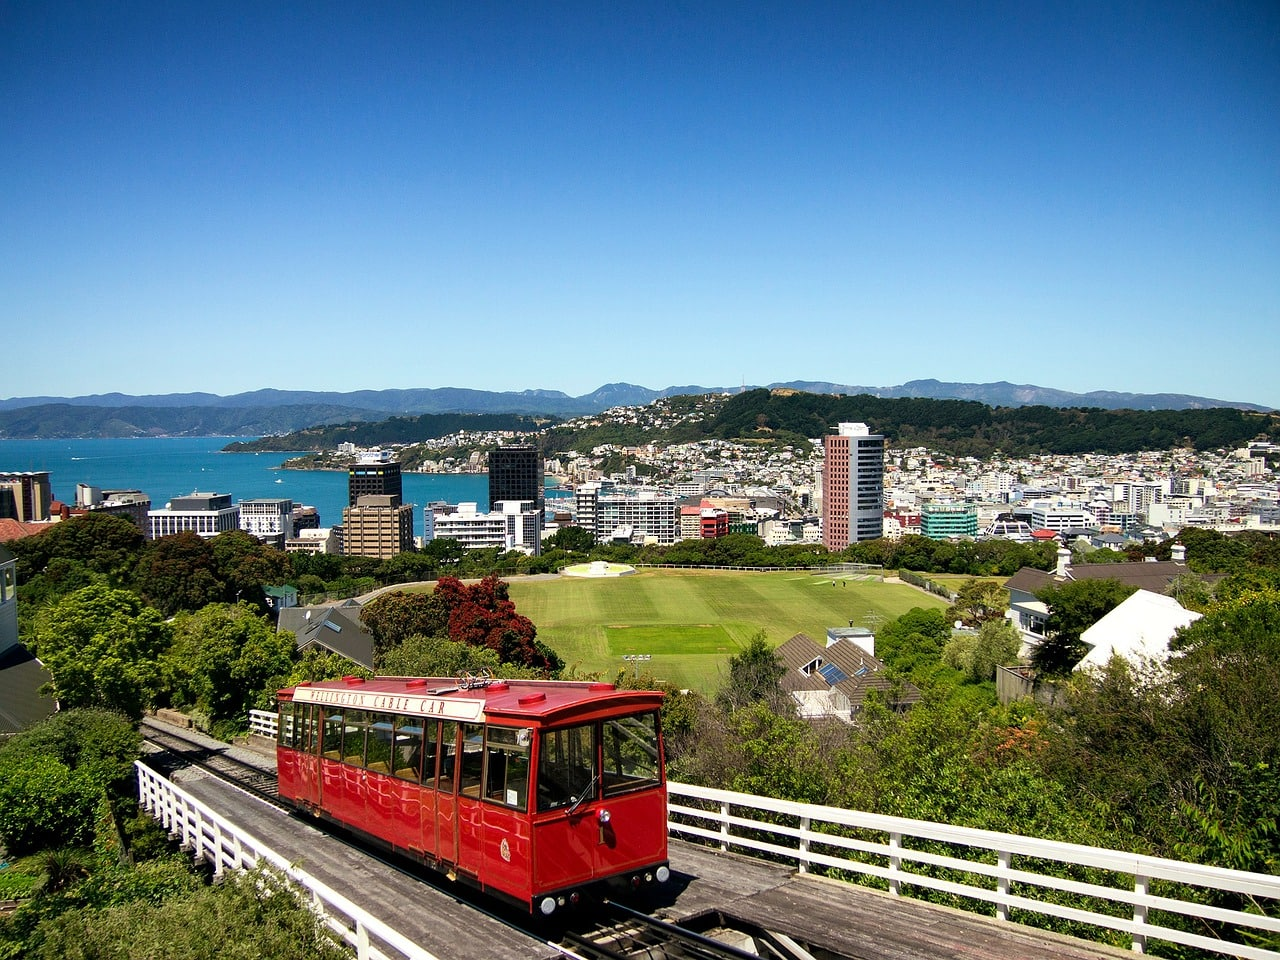 red cable car goes up to a viewpoint overlooking wellington, new zealand